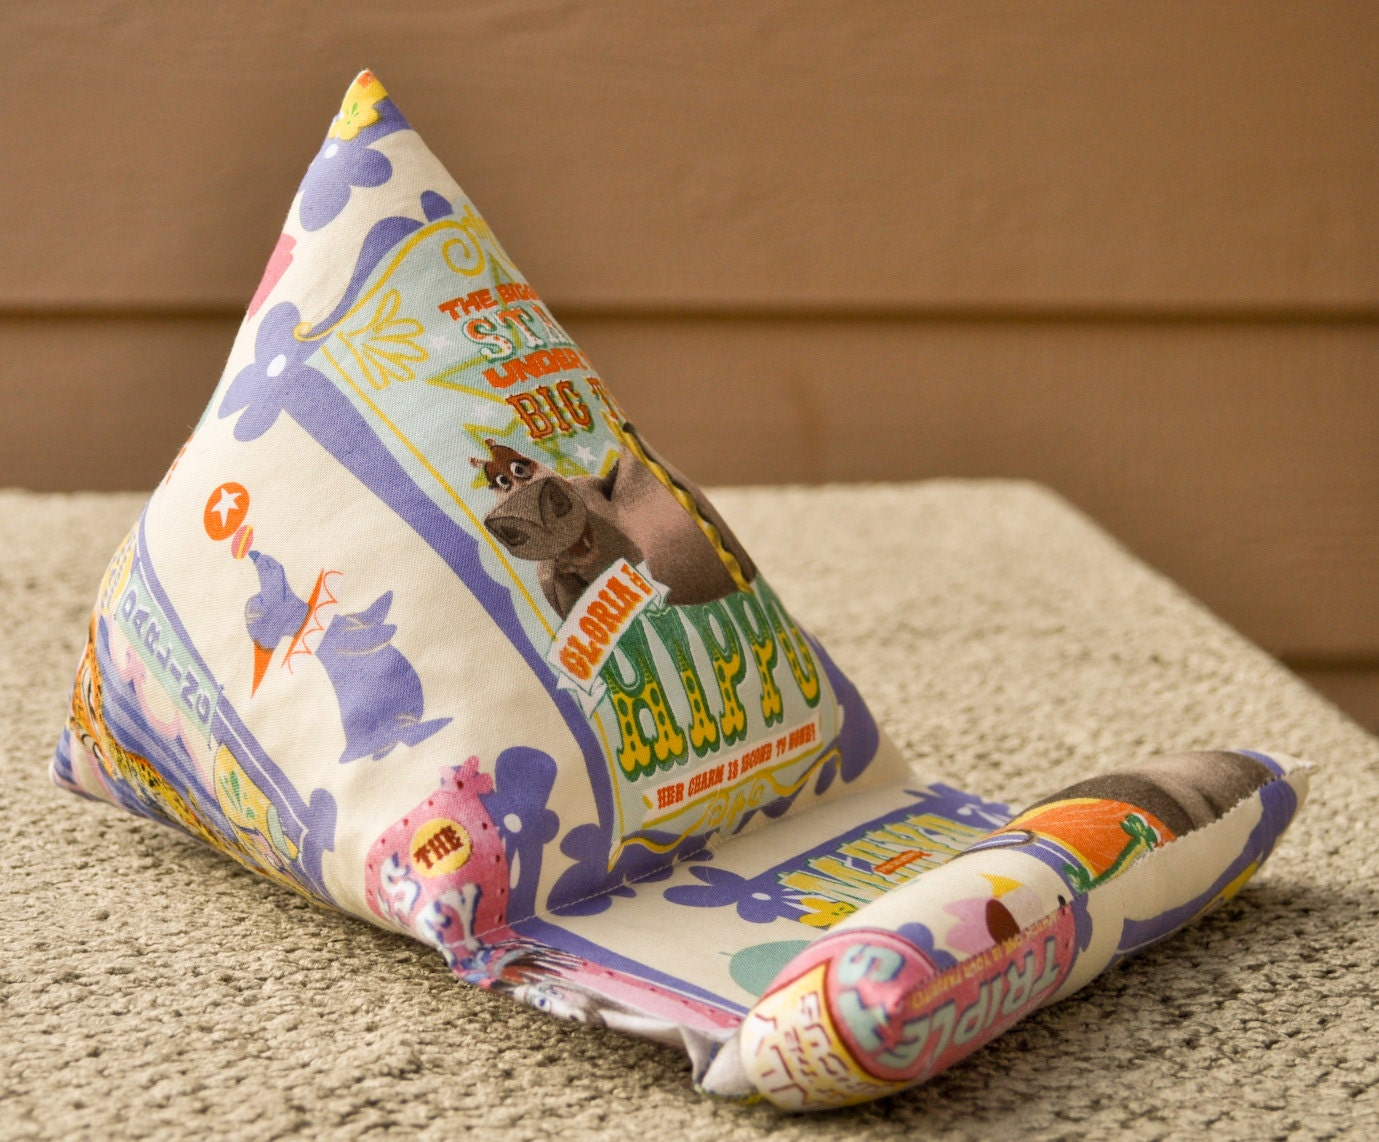 Phone/Kindle/Nook/iPod or iPad/Tablet Pillow Stand Madagascar